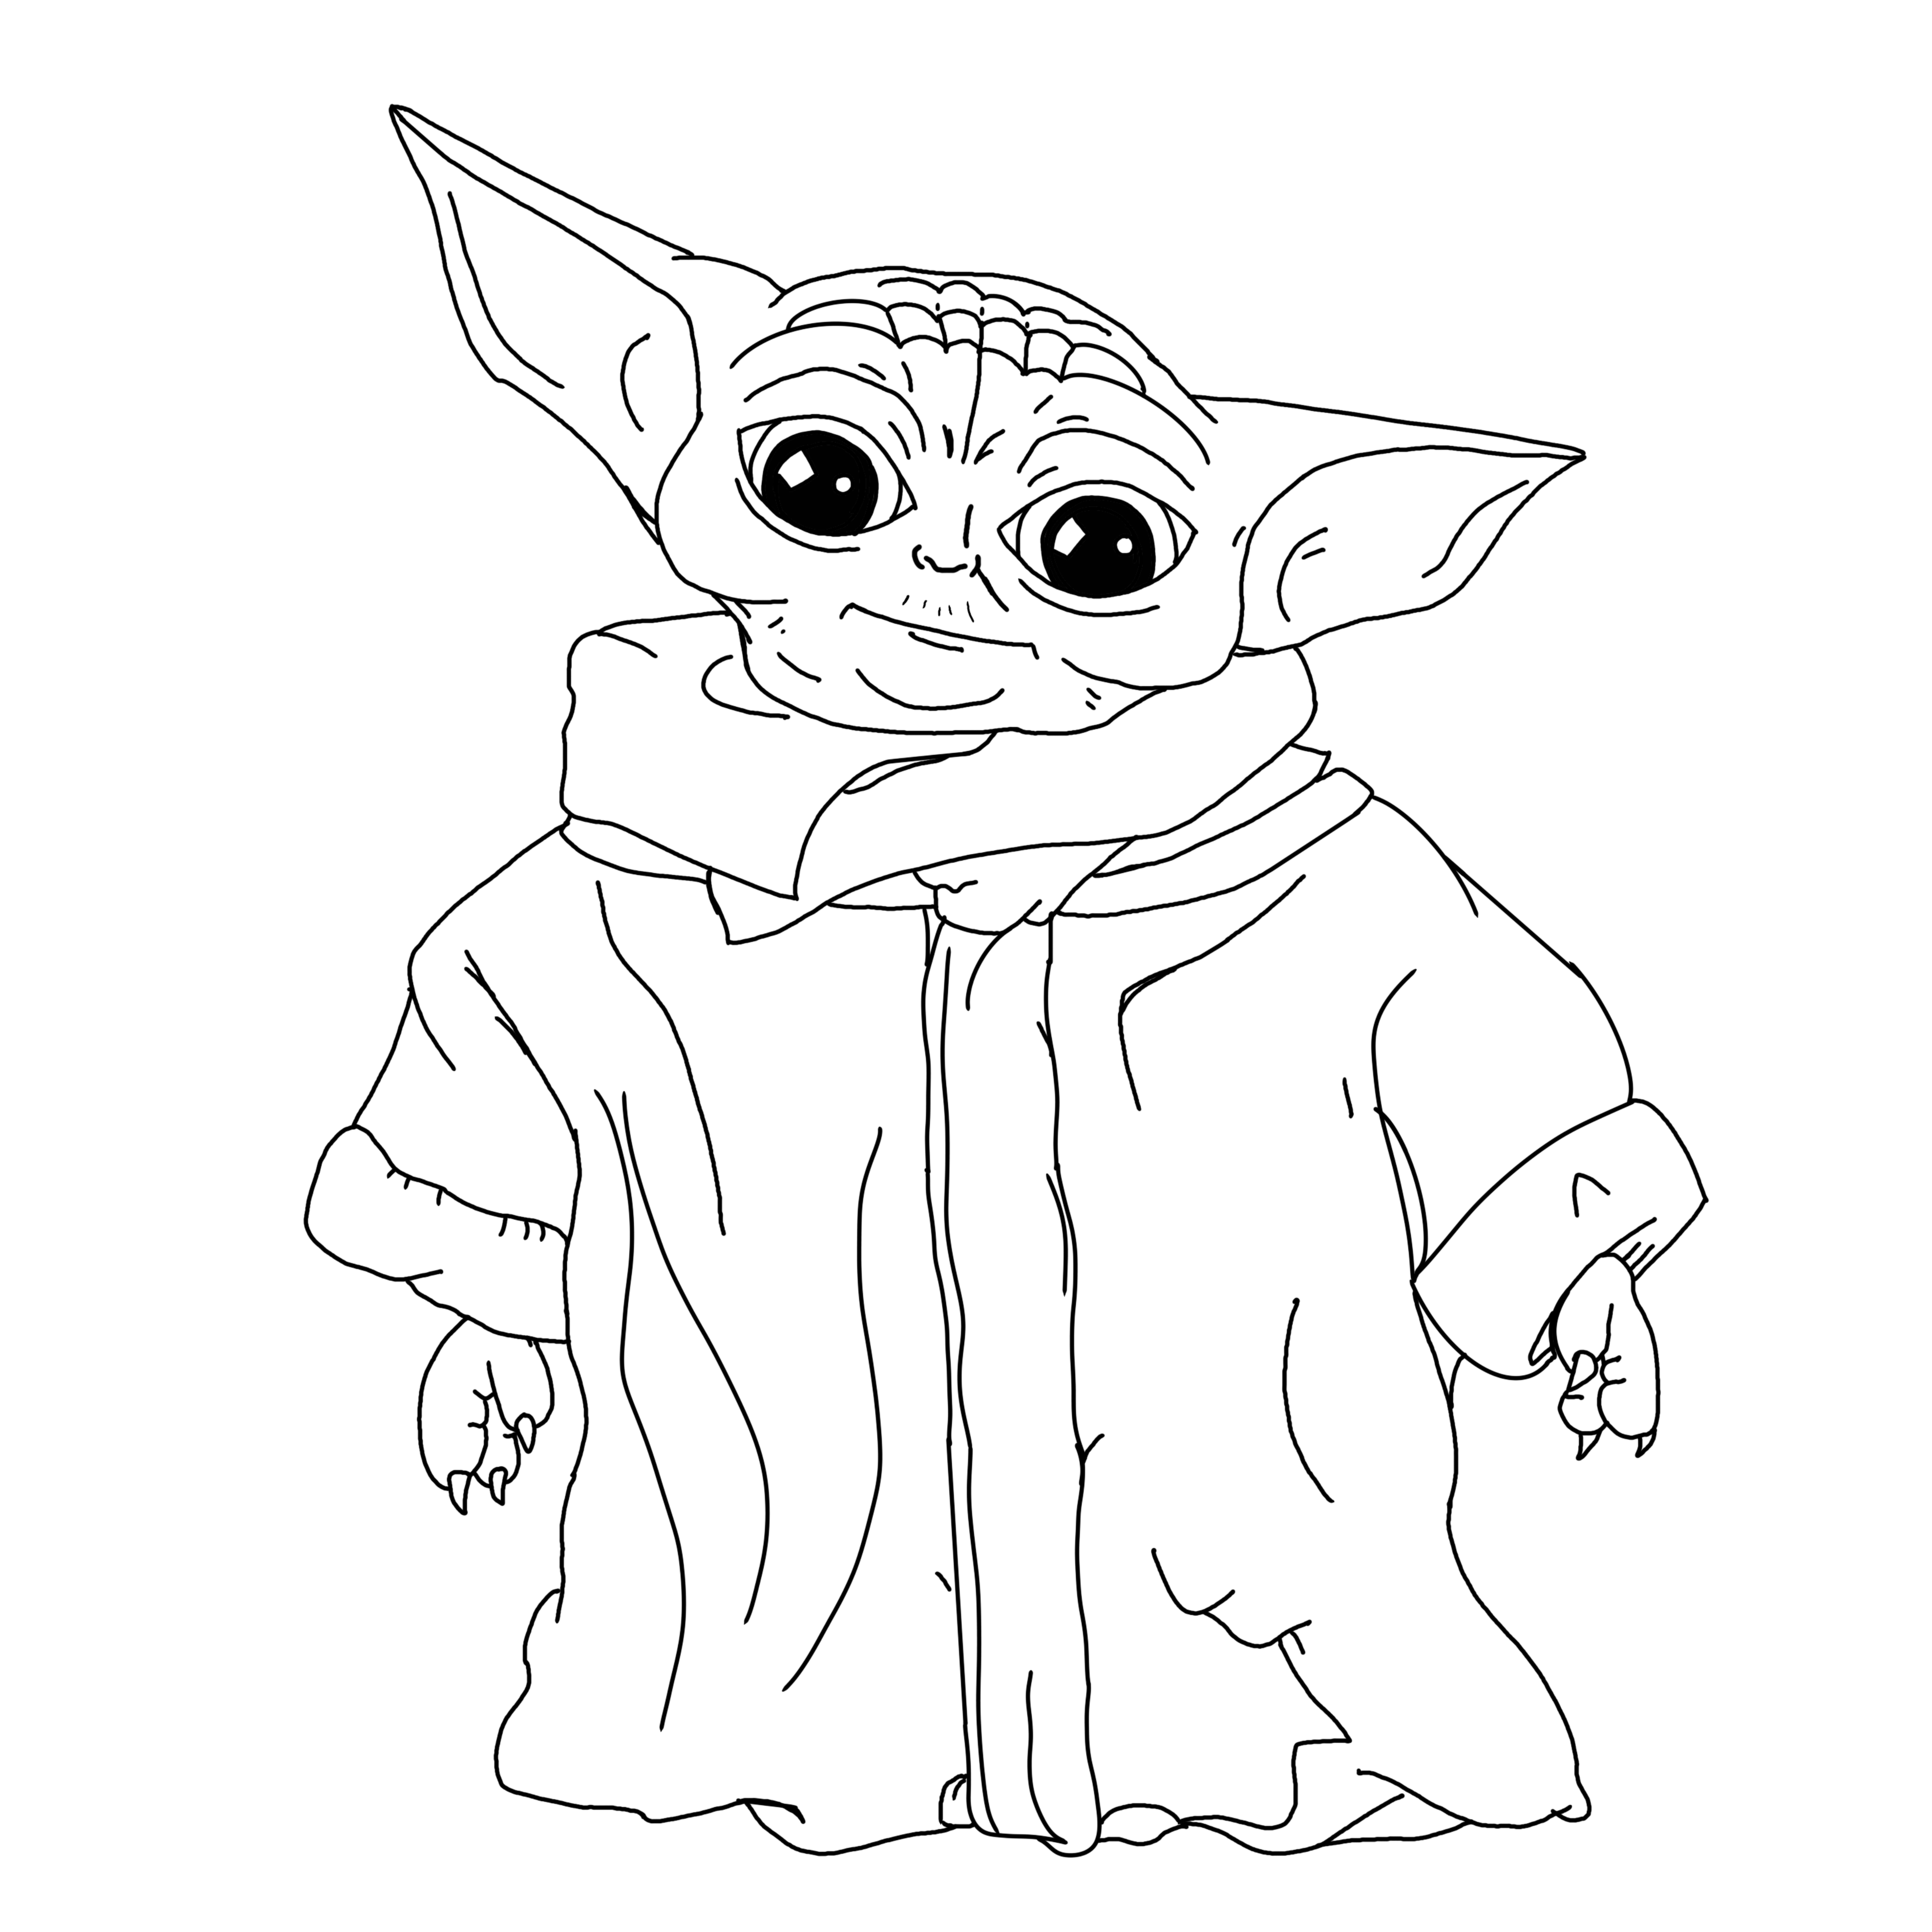 printable yoda coloring pages baby yoda colouring sheet in 2020 star wars drawings printable yoda pages coloring